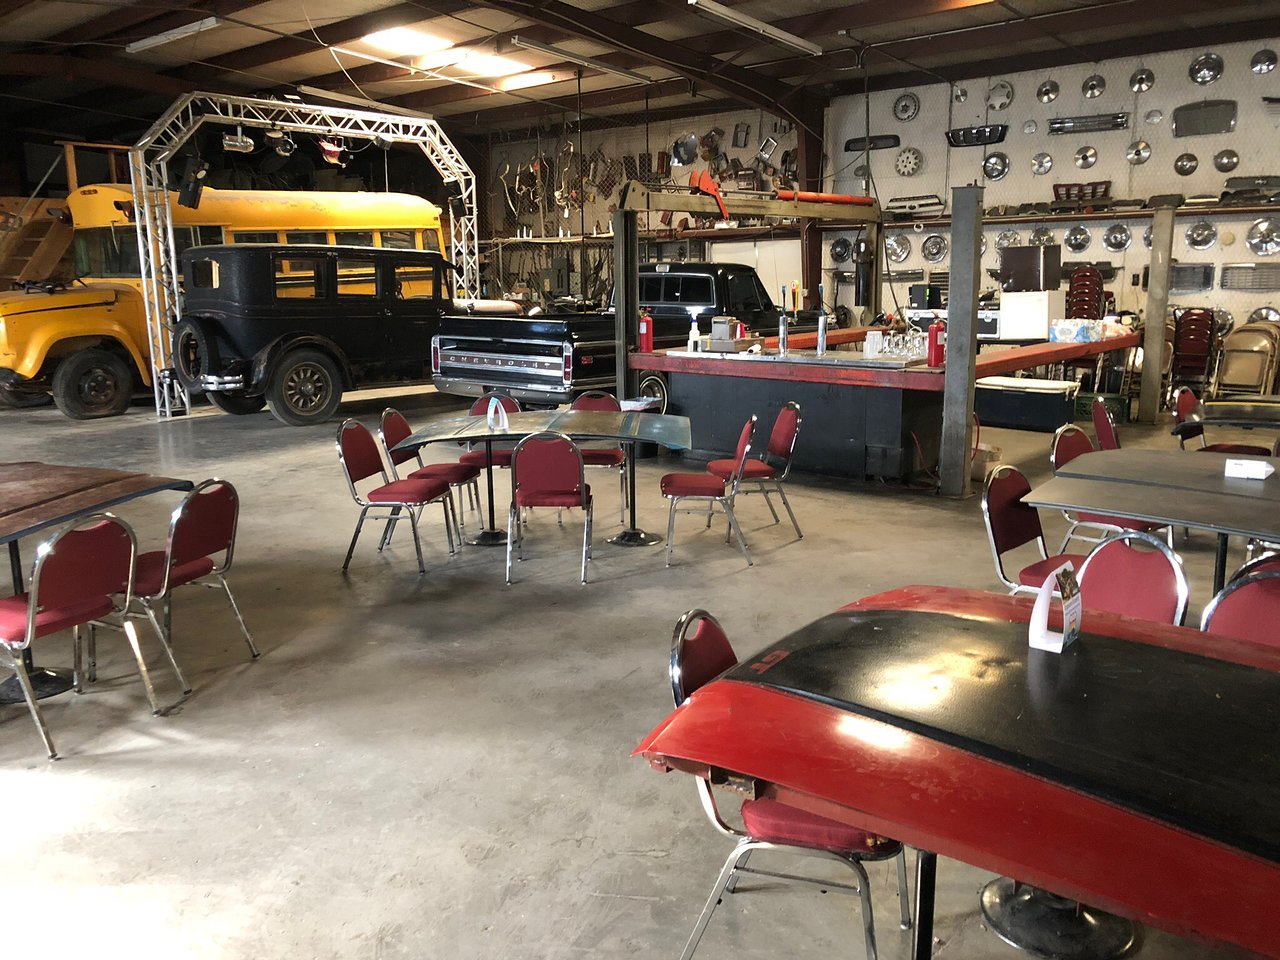 Tables set up in a garage for indoor/outdoor seating at a brewery